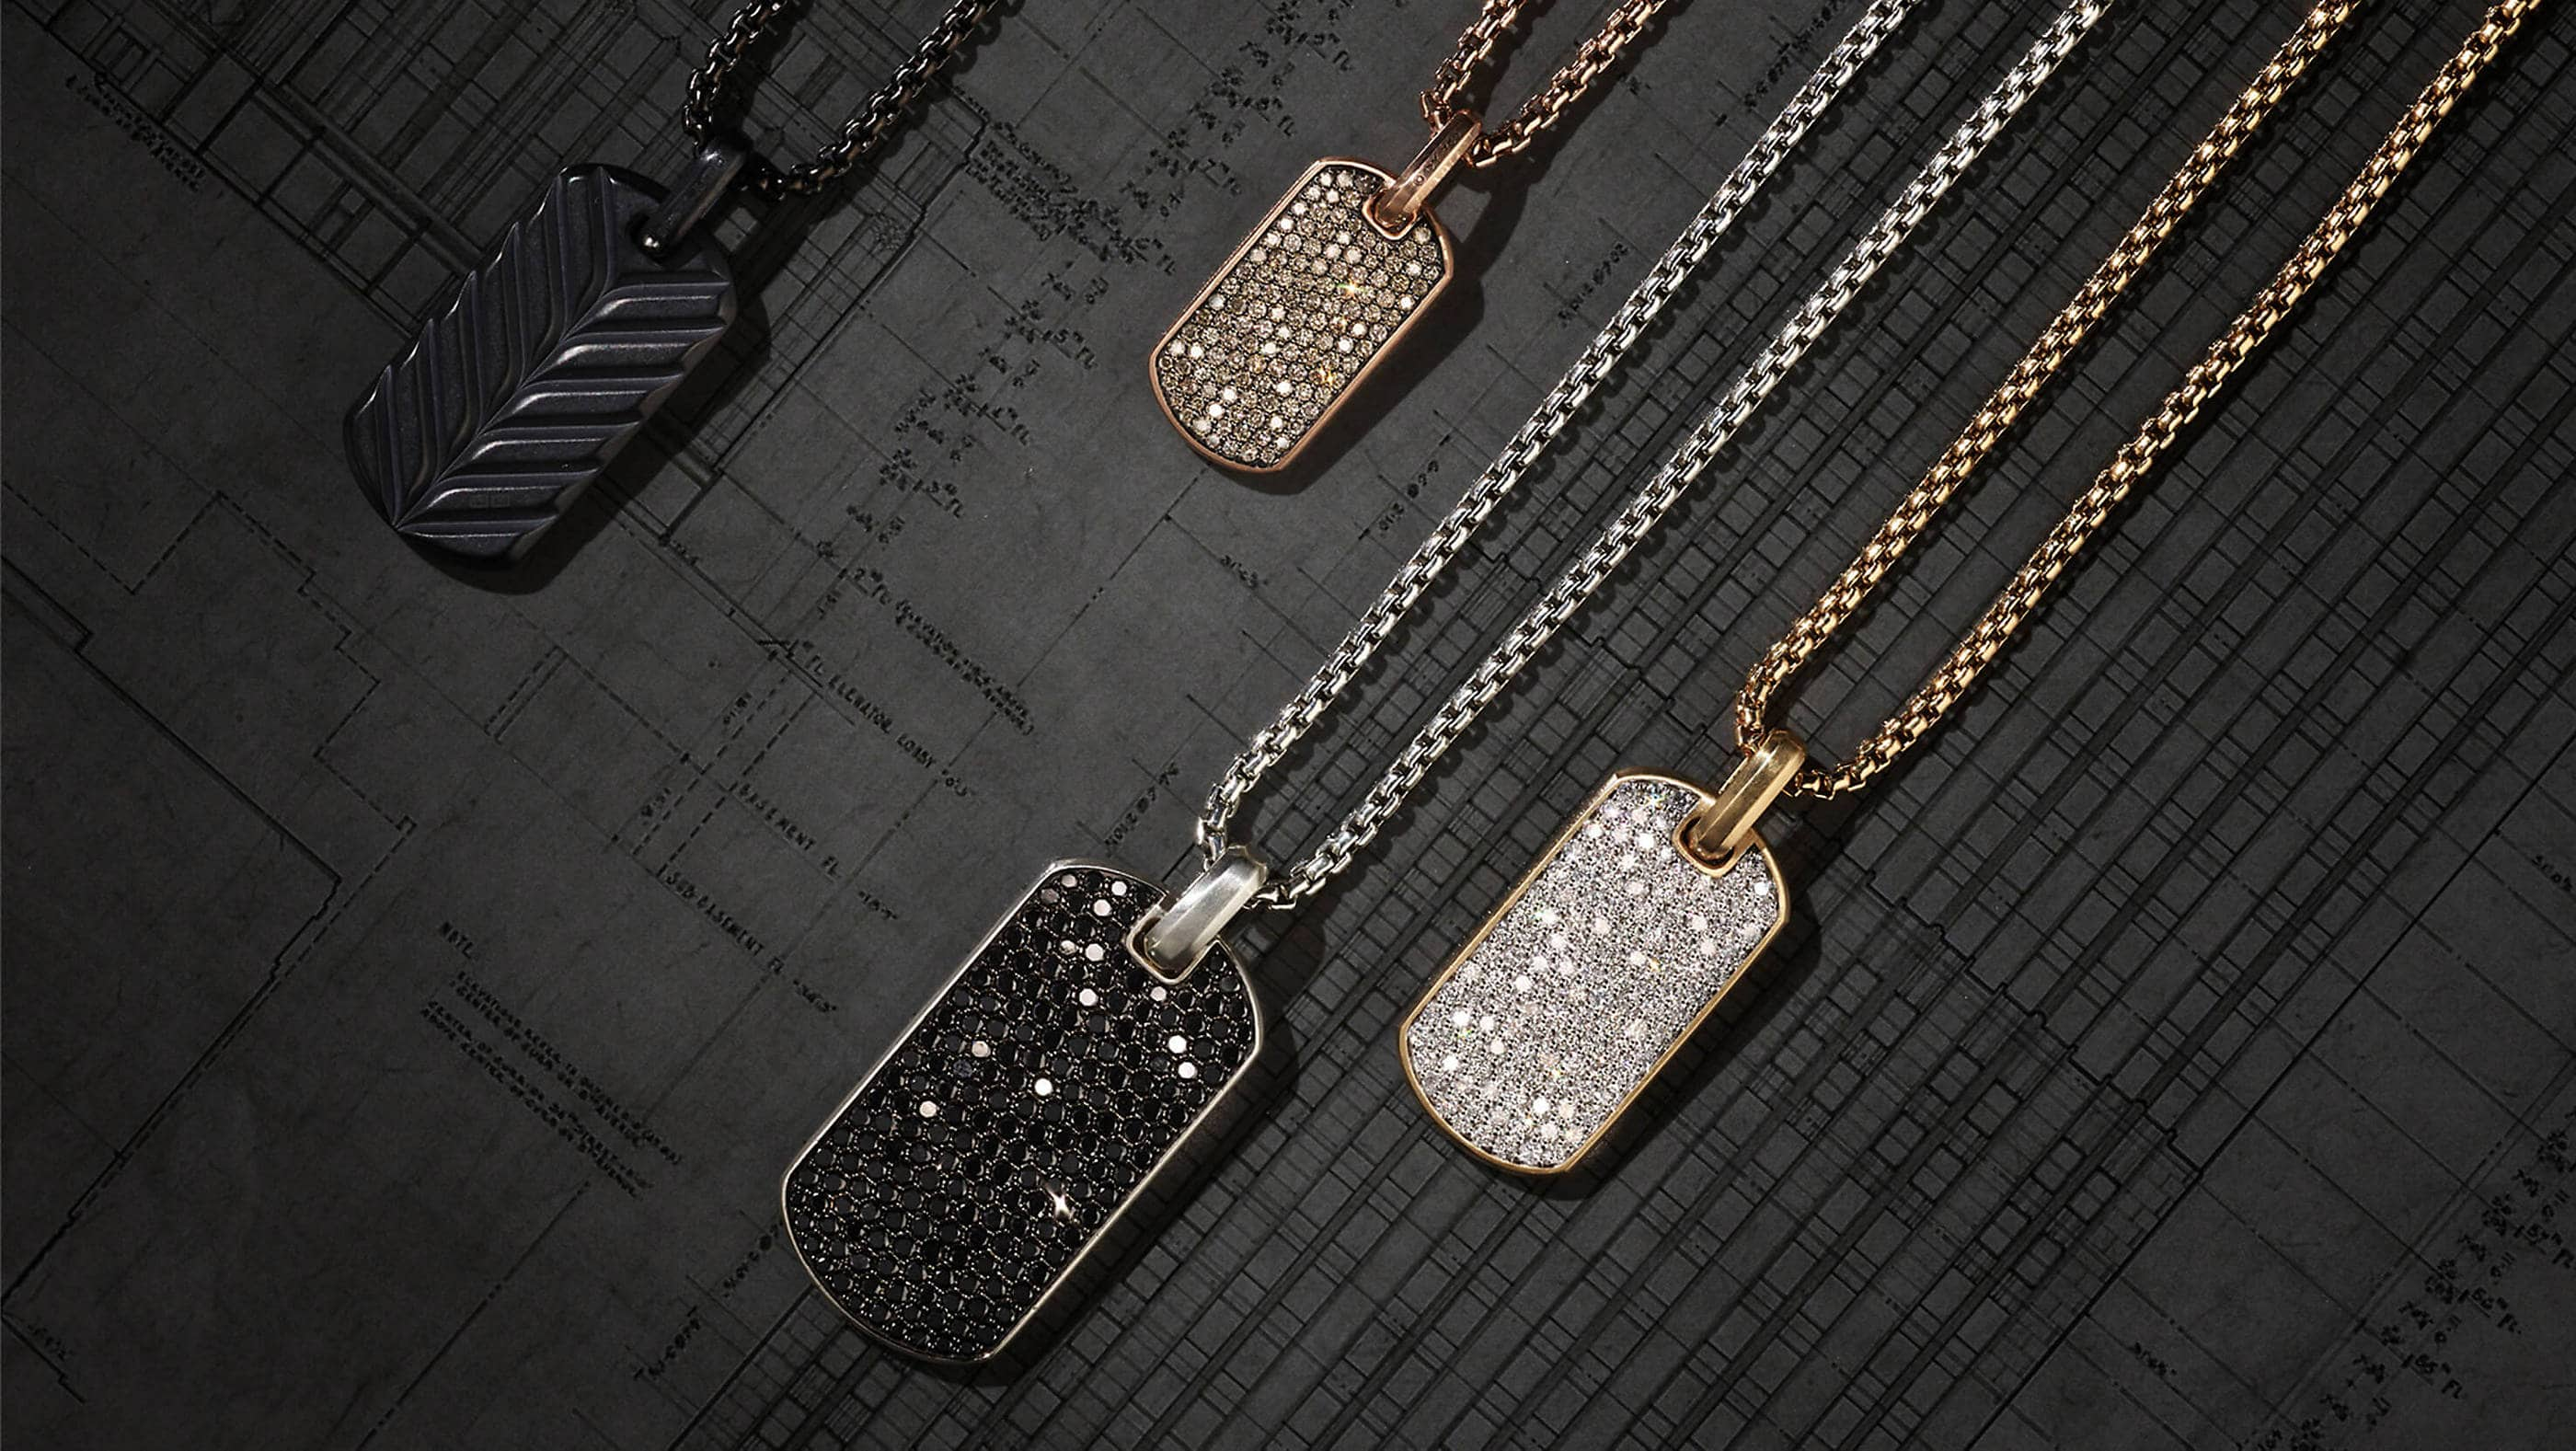 A color photo shows four tags and box chains lying on a dark grey architectural rendering in a diagonal row. The jewelry is crafted of black titanium, blackened stainless steel, 18K rose or yellow gold, or sterling silver with or without cognac, black or white diamonds.